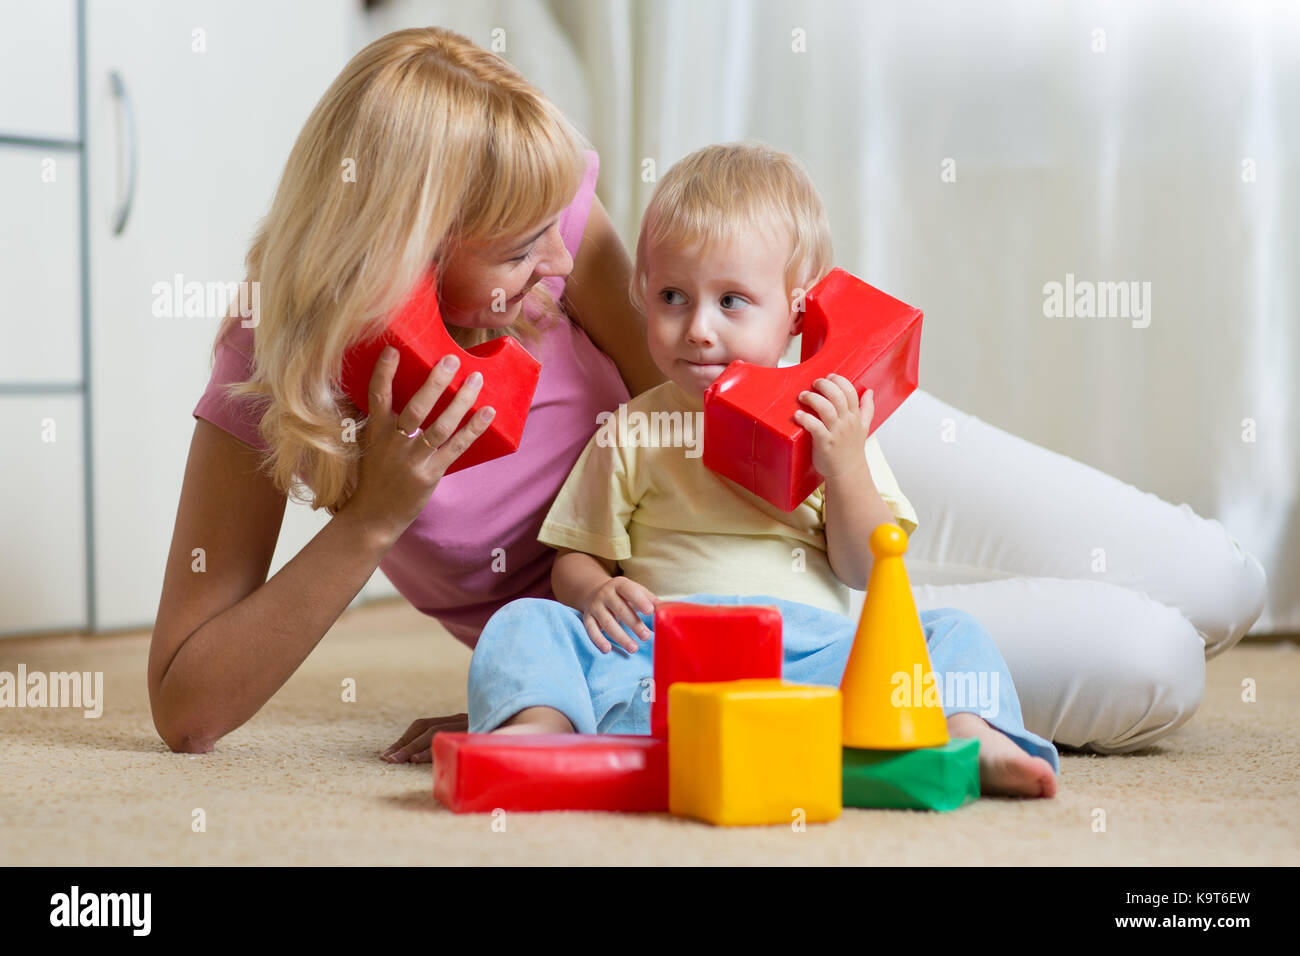 cute mother and child boy role playing together at home - Stock Image